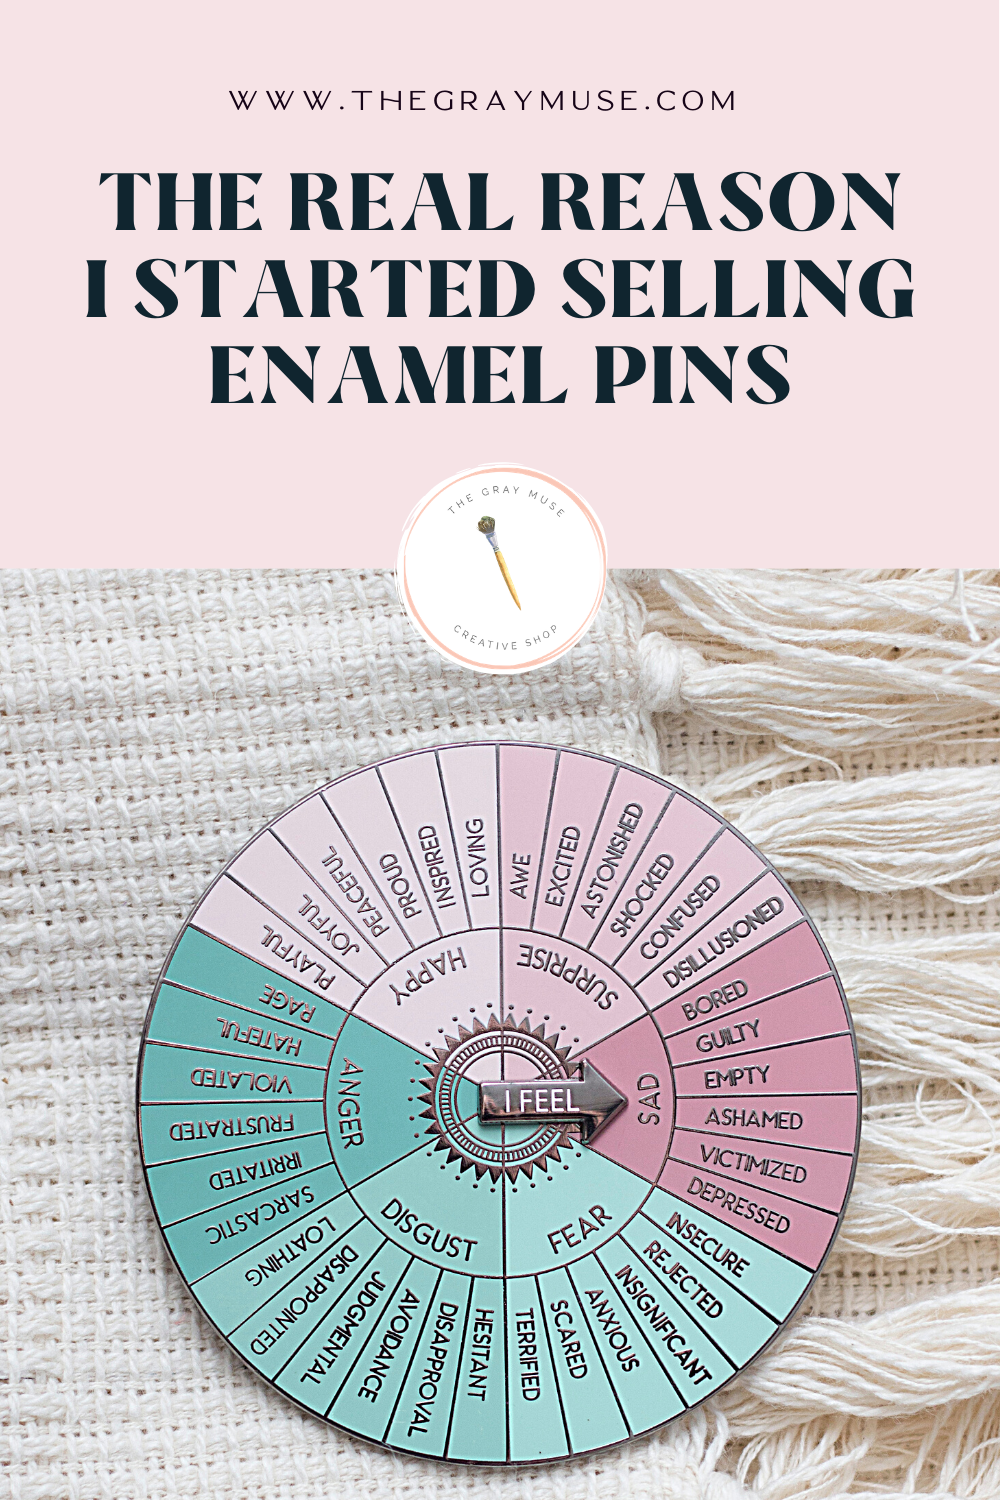 The Gray Muse - The Real Reason I Started Selling Enamel Pins - Pinterest